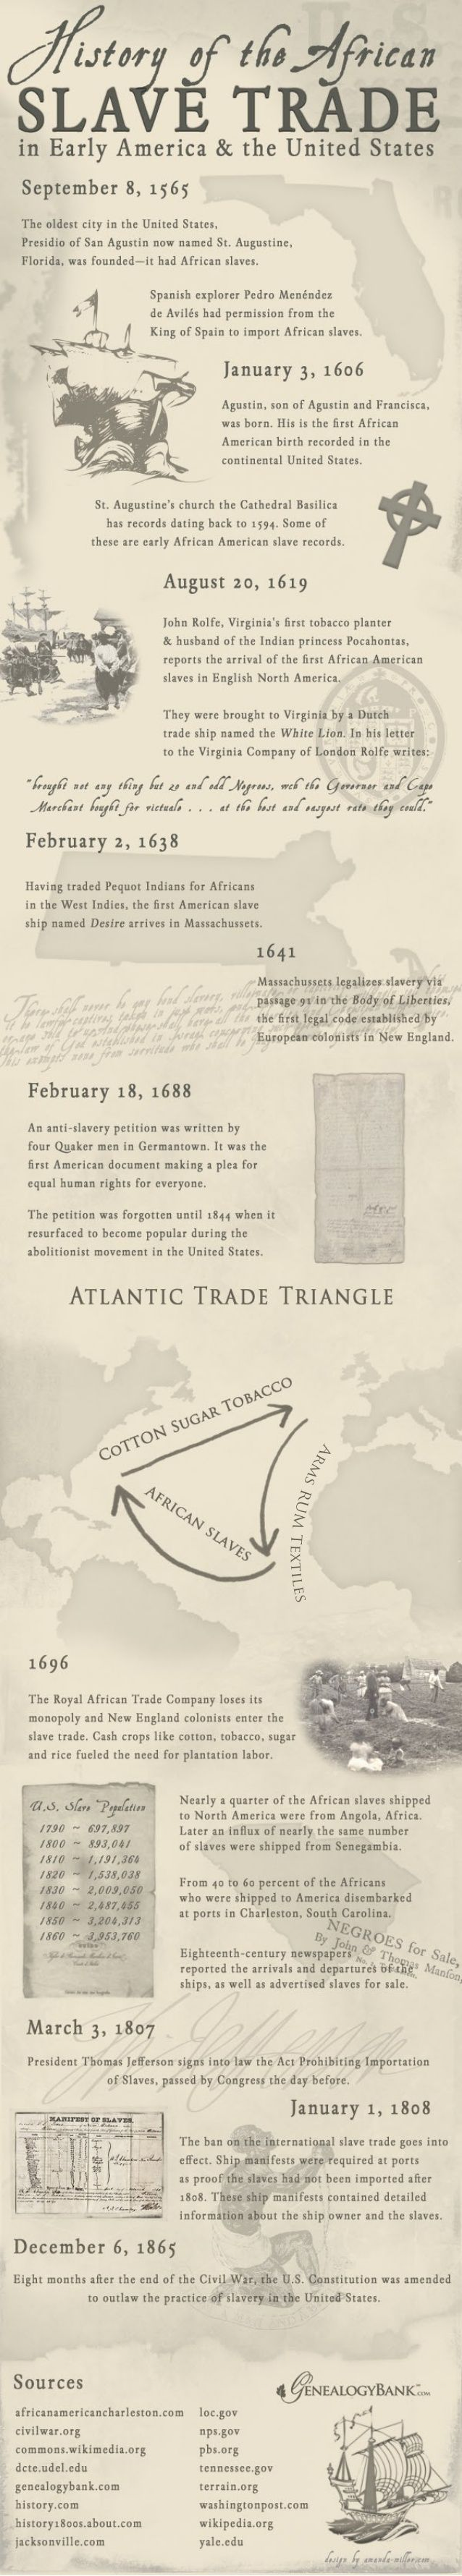 History of the African Slave Trade in Early America by GenealogyBank via slideshare